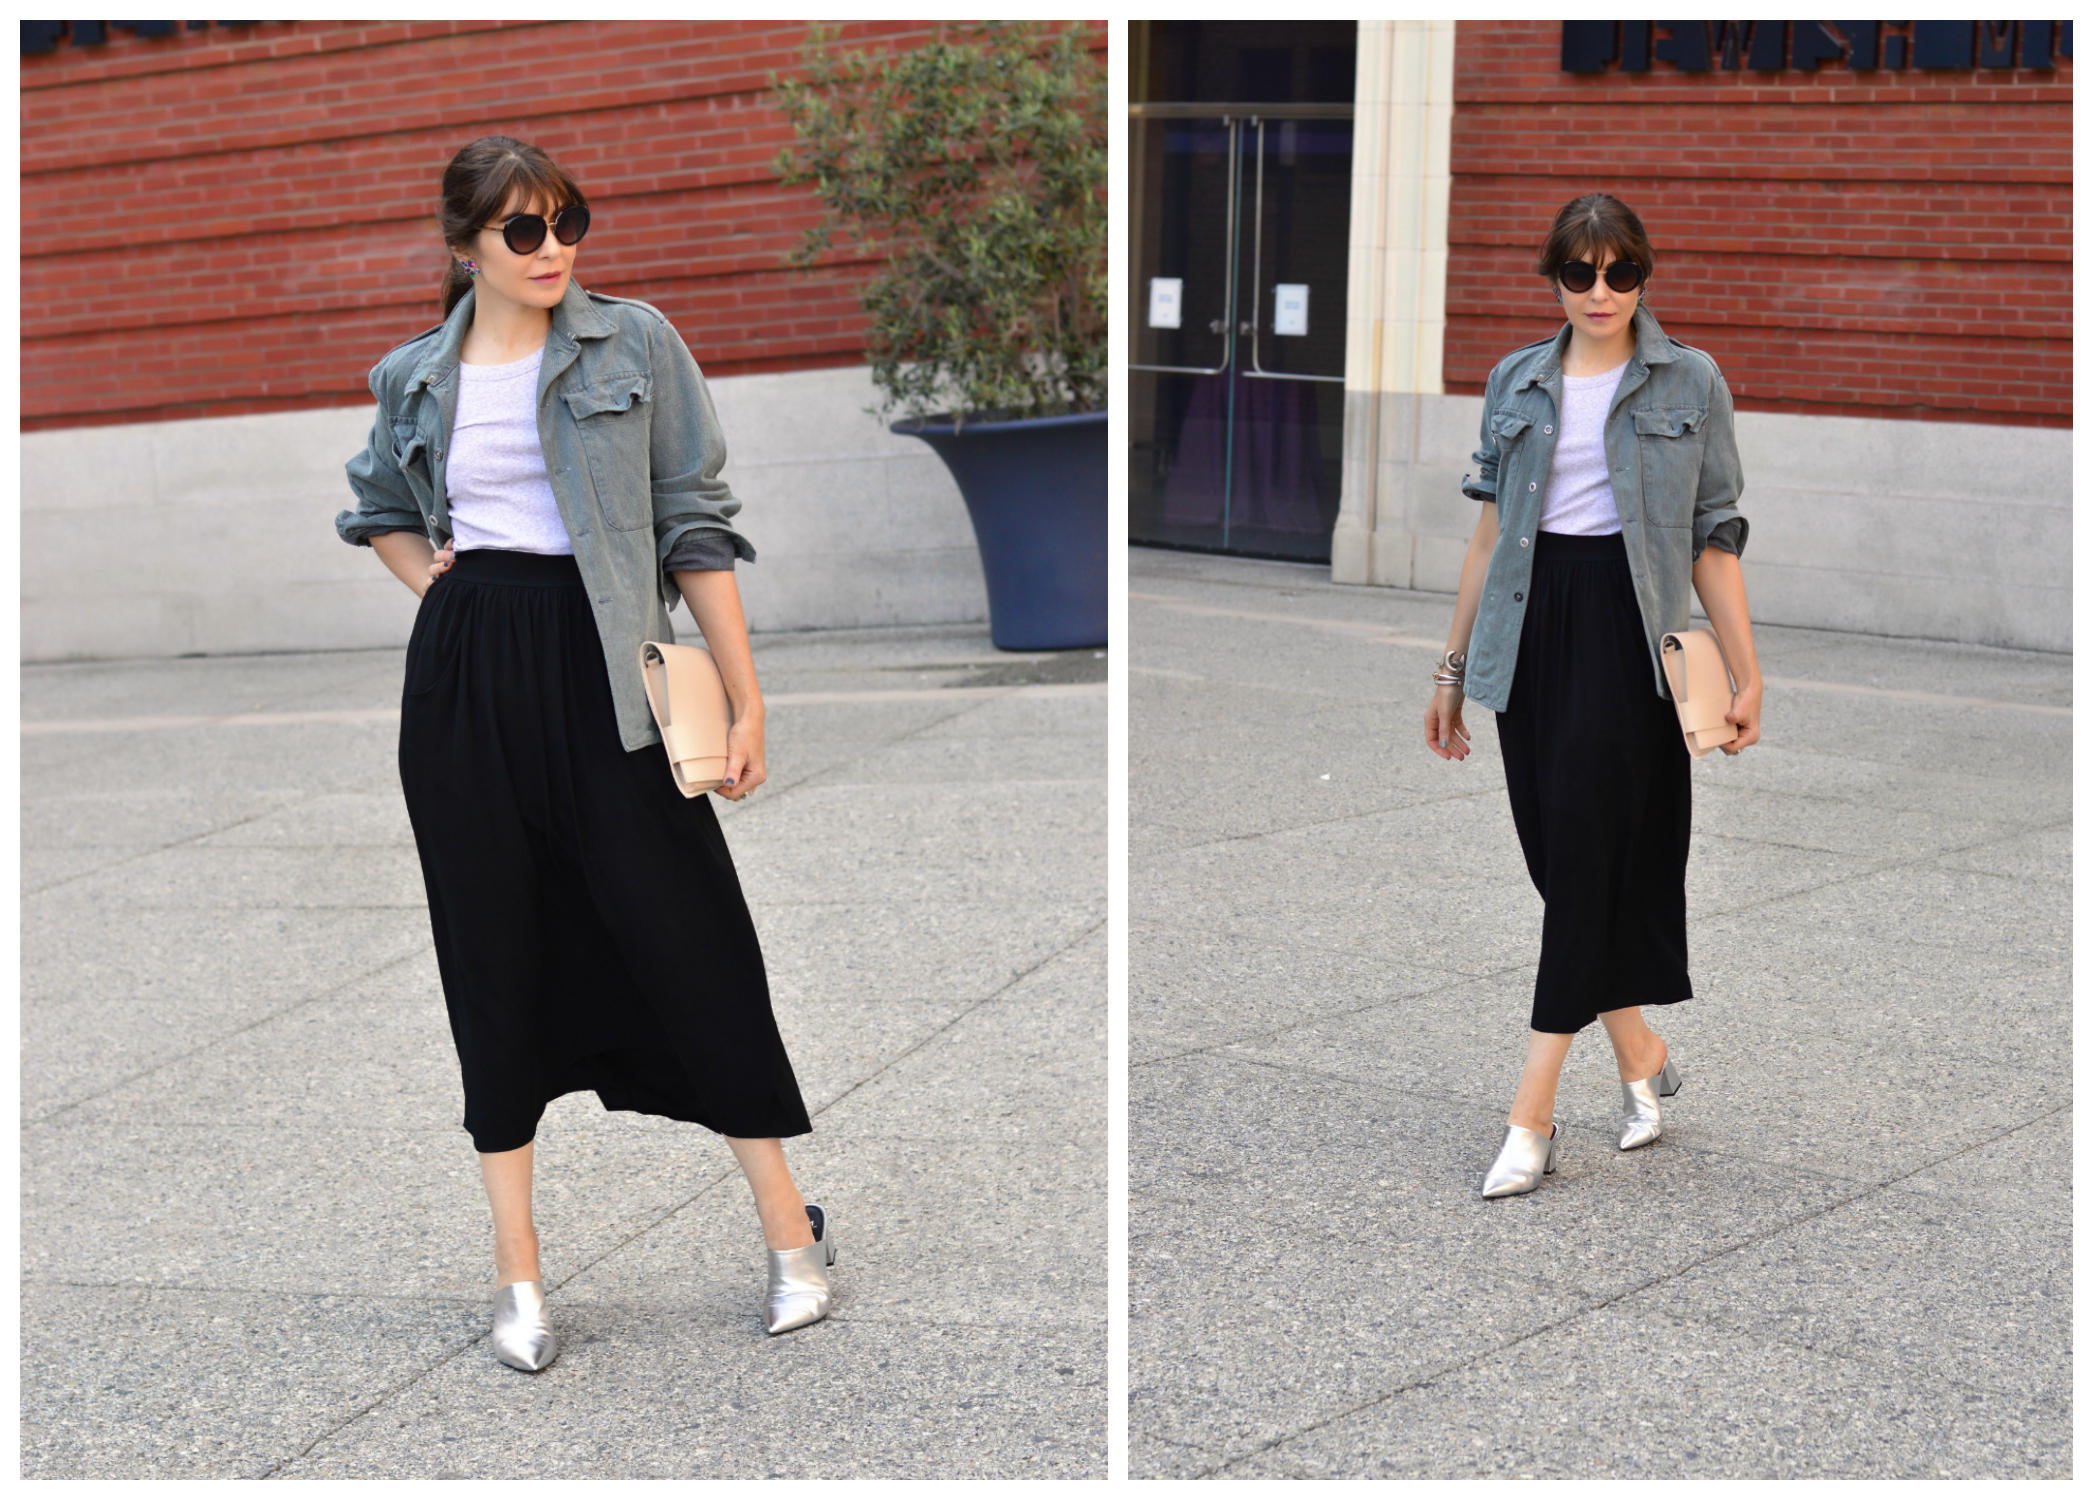 Vintage denim and maxic skirt.